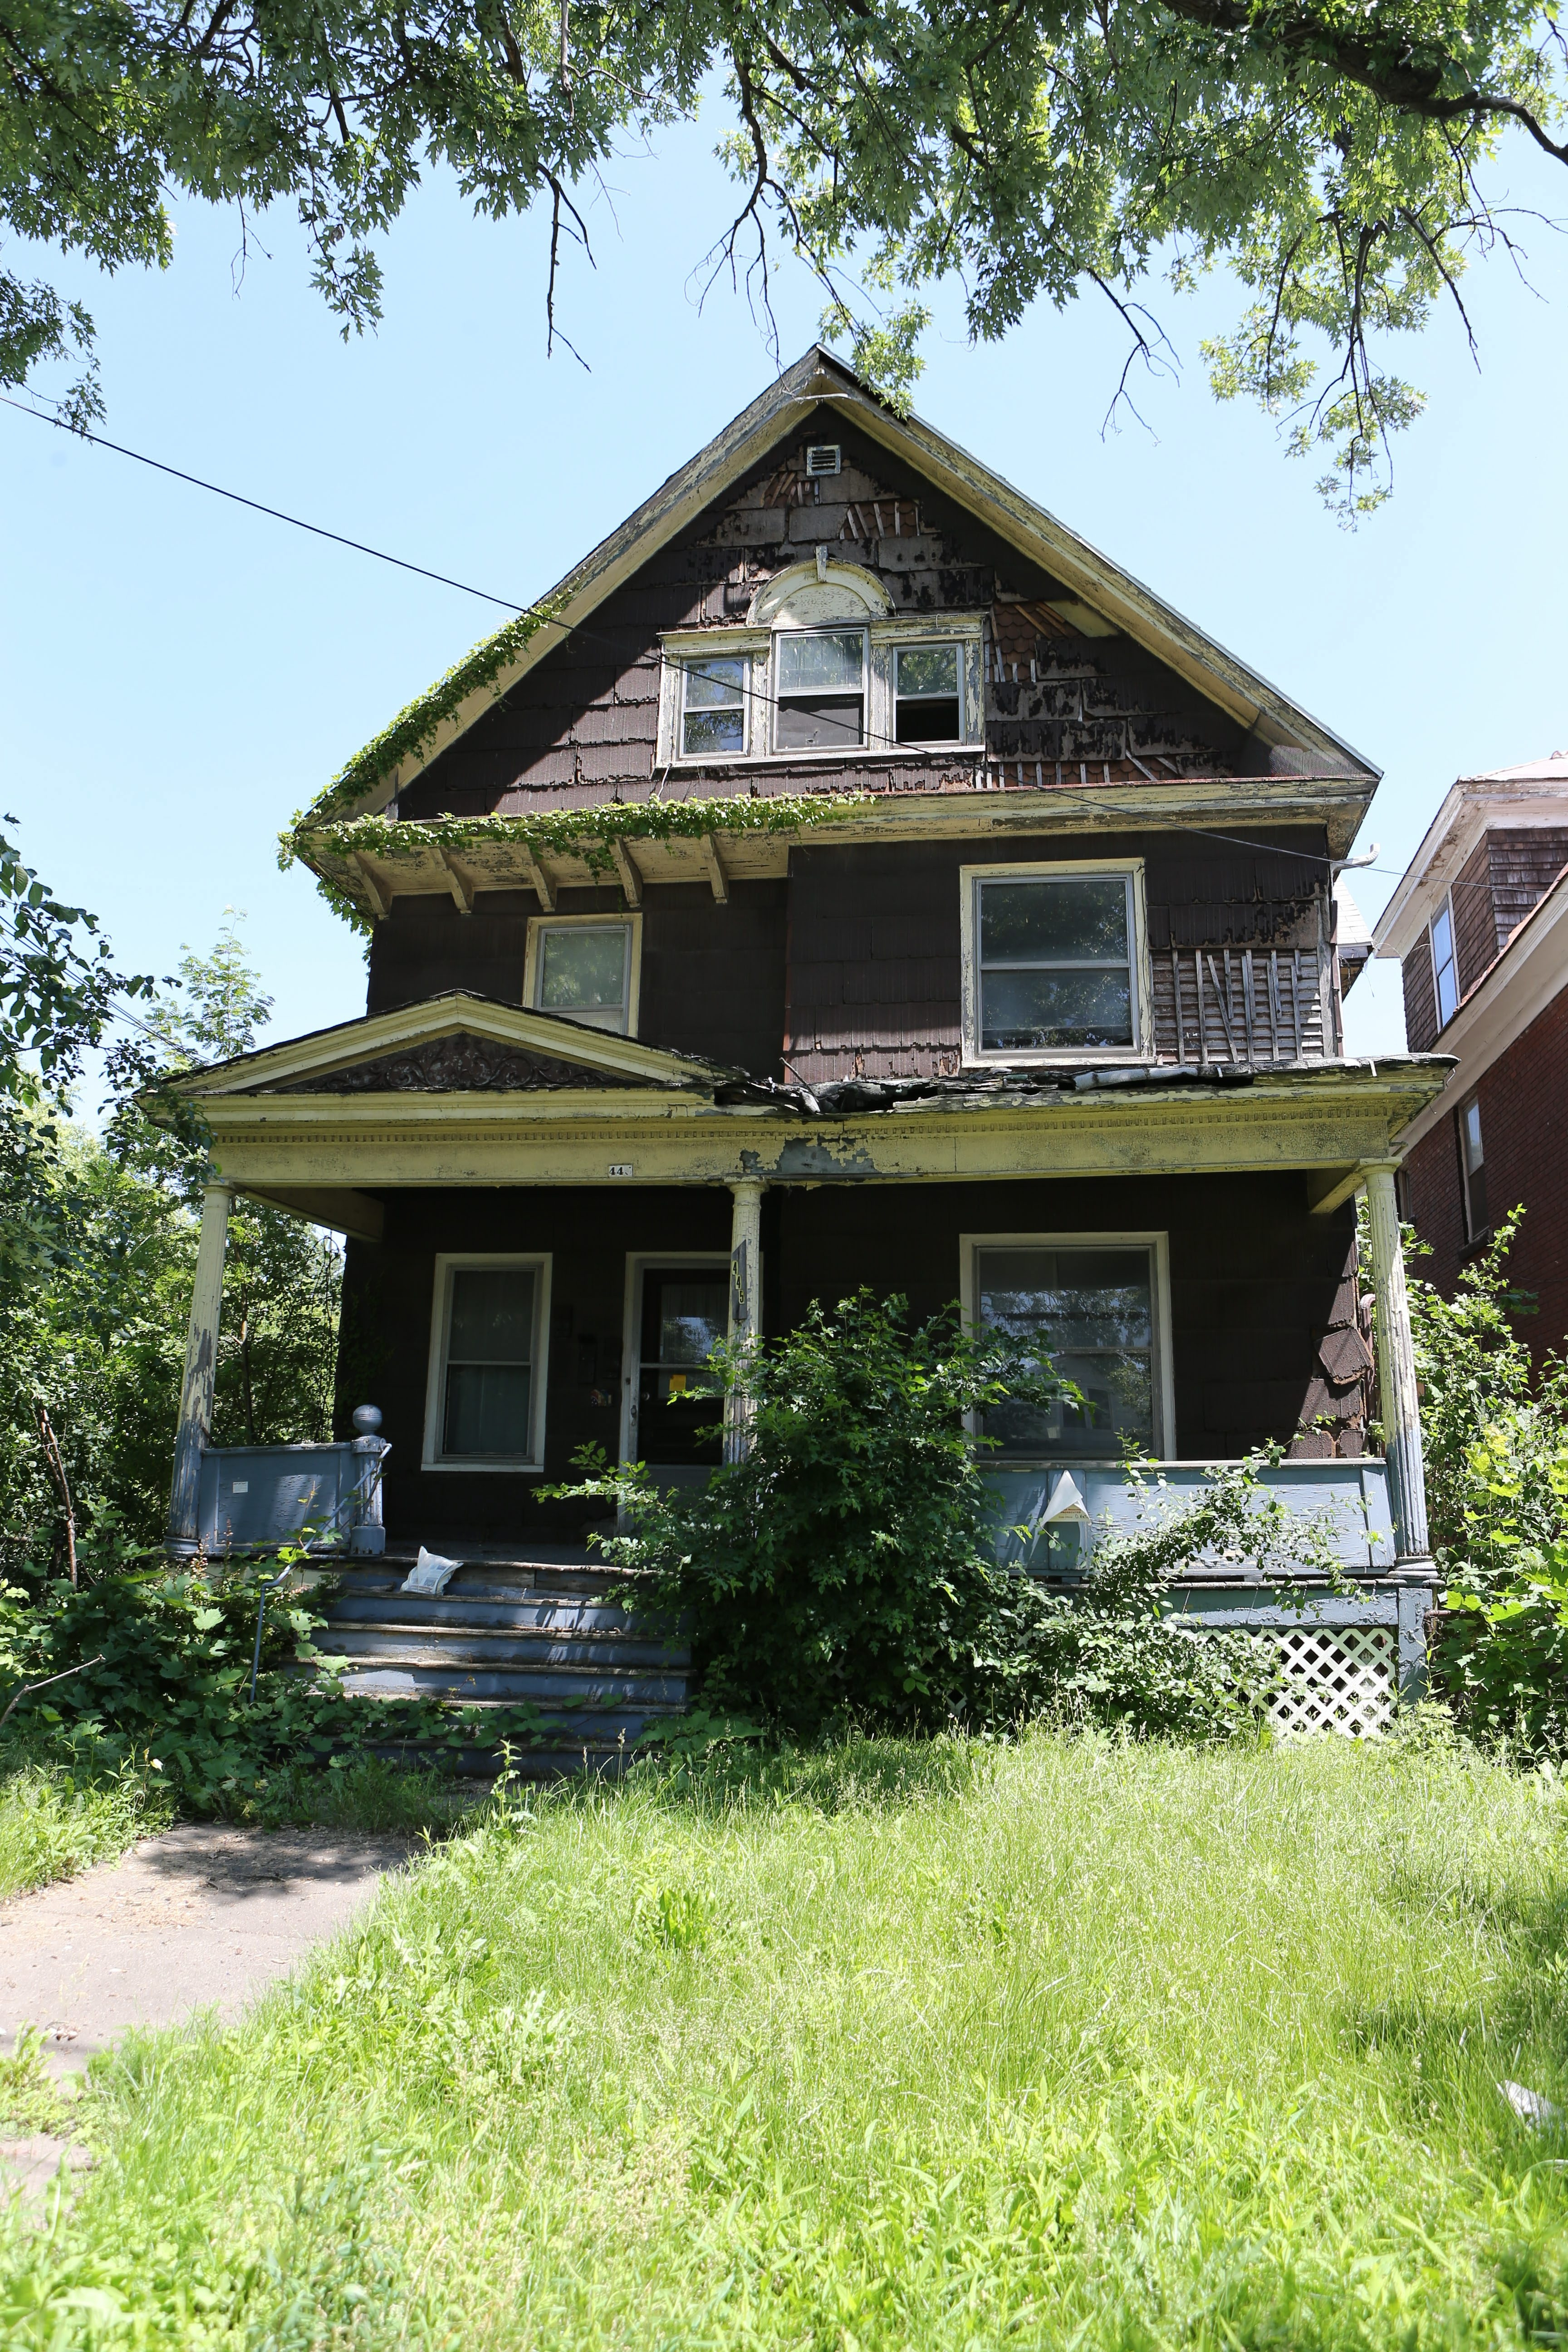 This  home at 442 Fourth St. in Niagara Falls is one of 14 blighted buildings scheduled to be demolished in the near future as part of the contract.